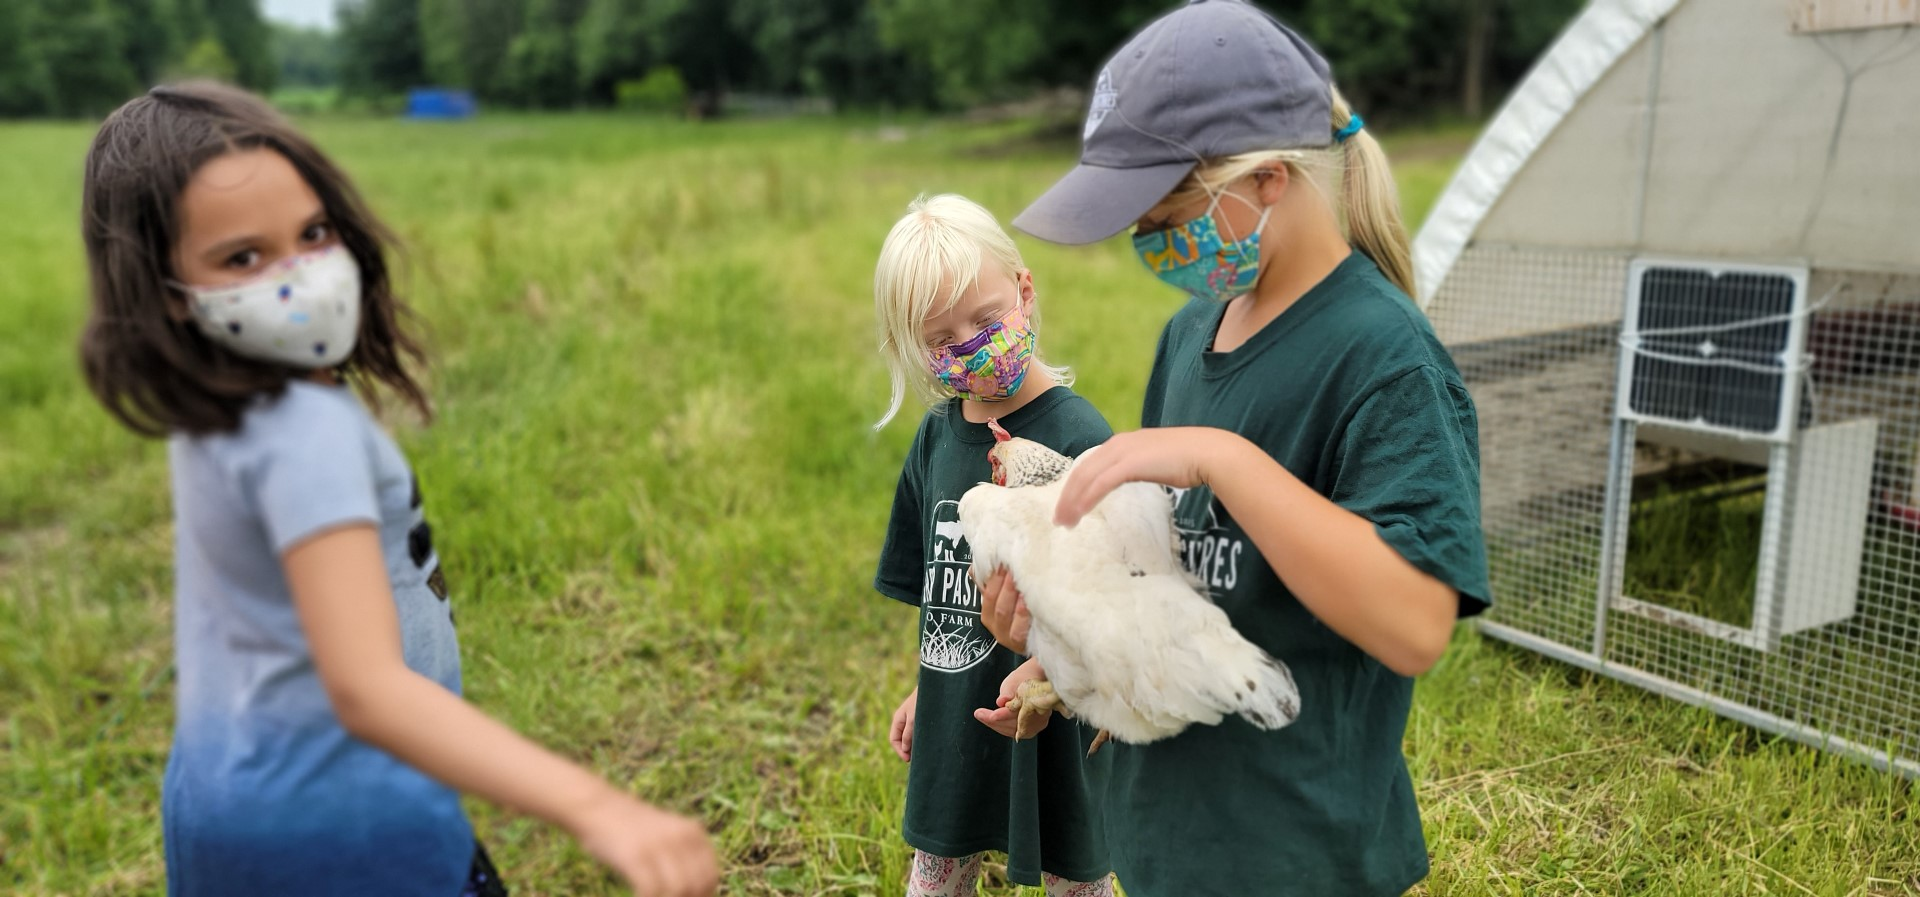 kids holding chicken and girl looking on